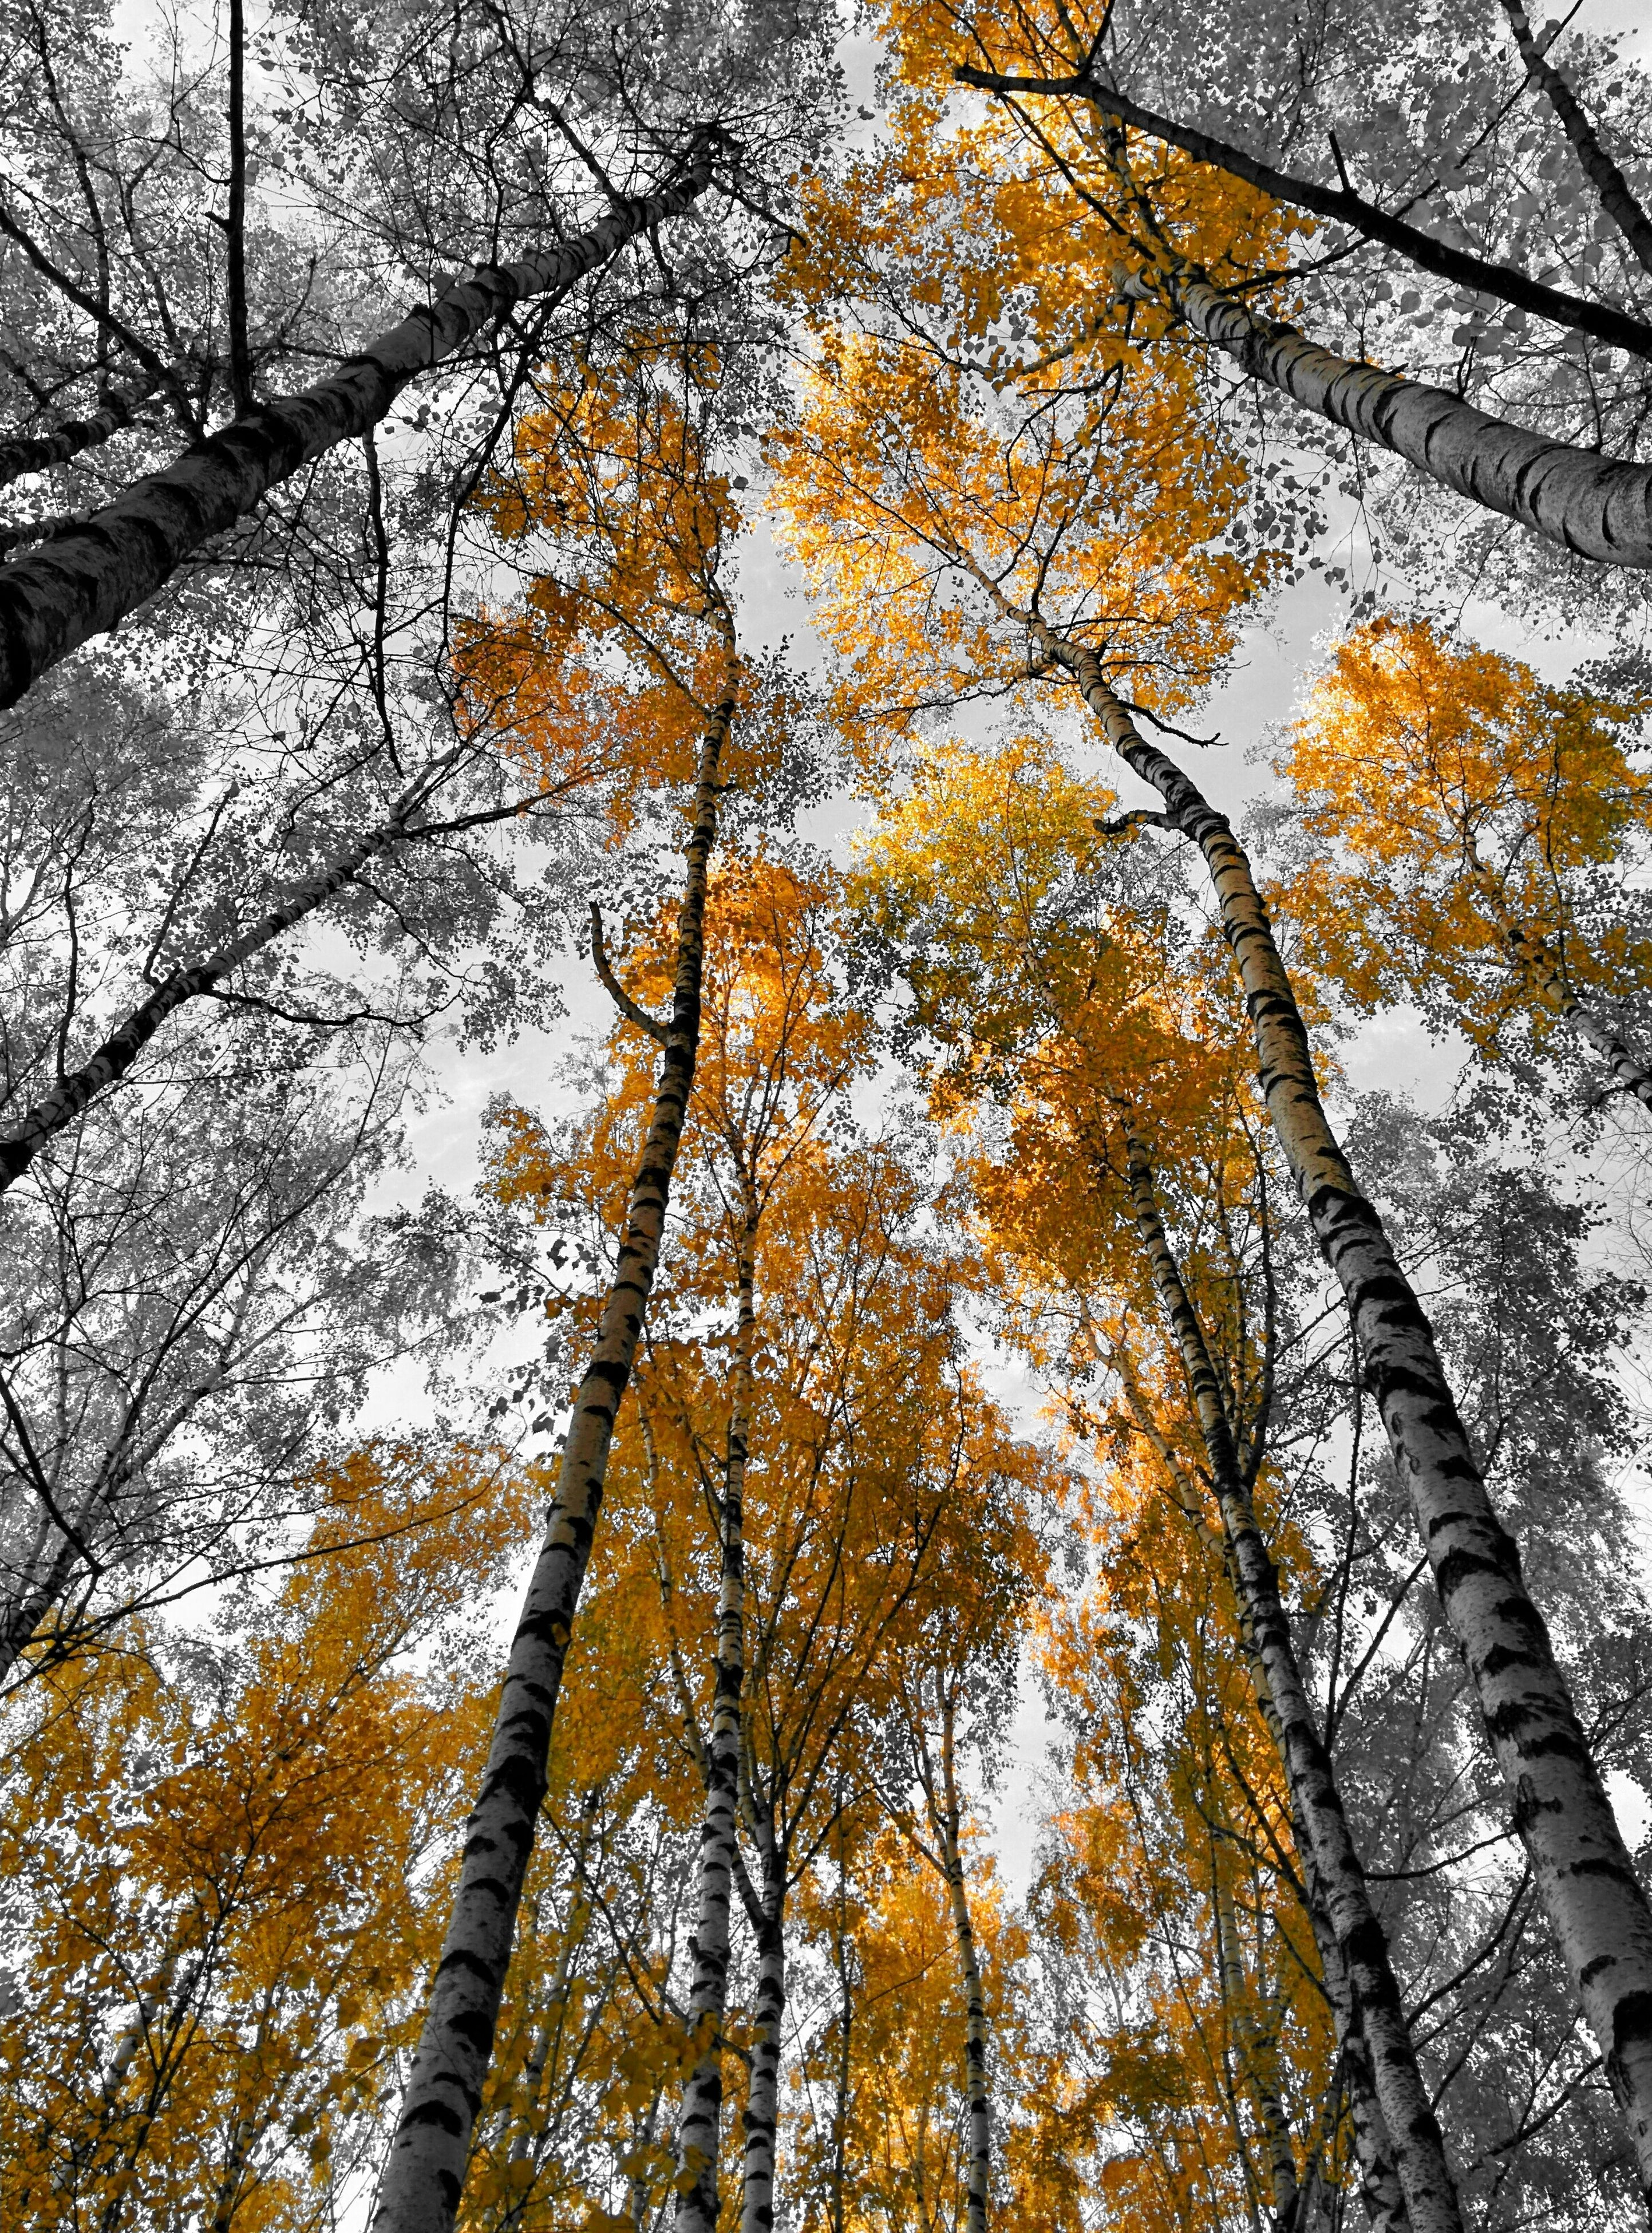 tree, branch, low angle view, tree trunk, growth, autumn, nature, season, yellow, change, tranquility, beauty in nature, forest, day, woodland, scenics, tranquil scene, no people, outdoors, sky